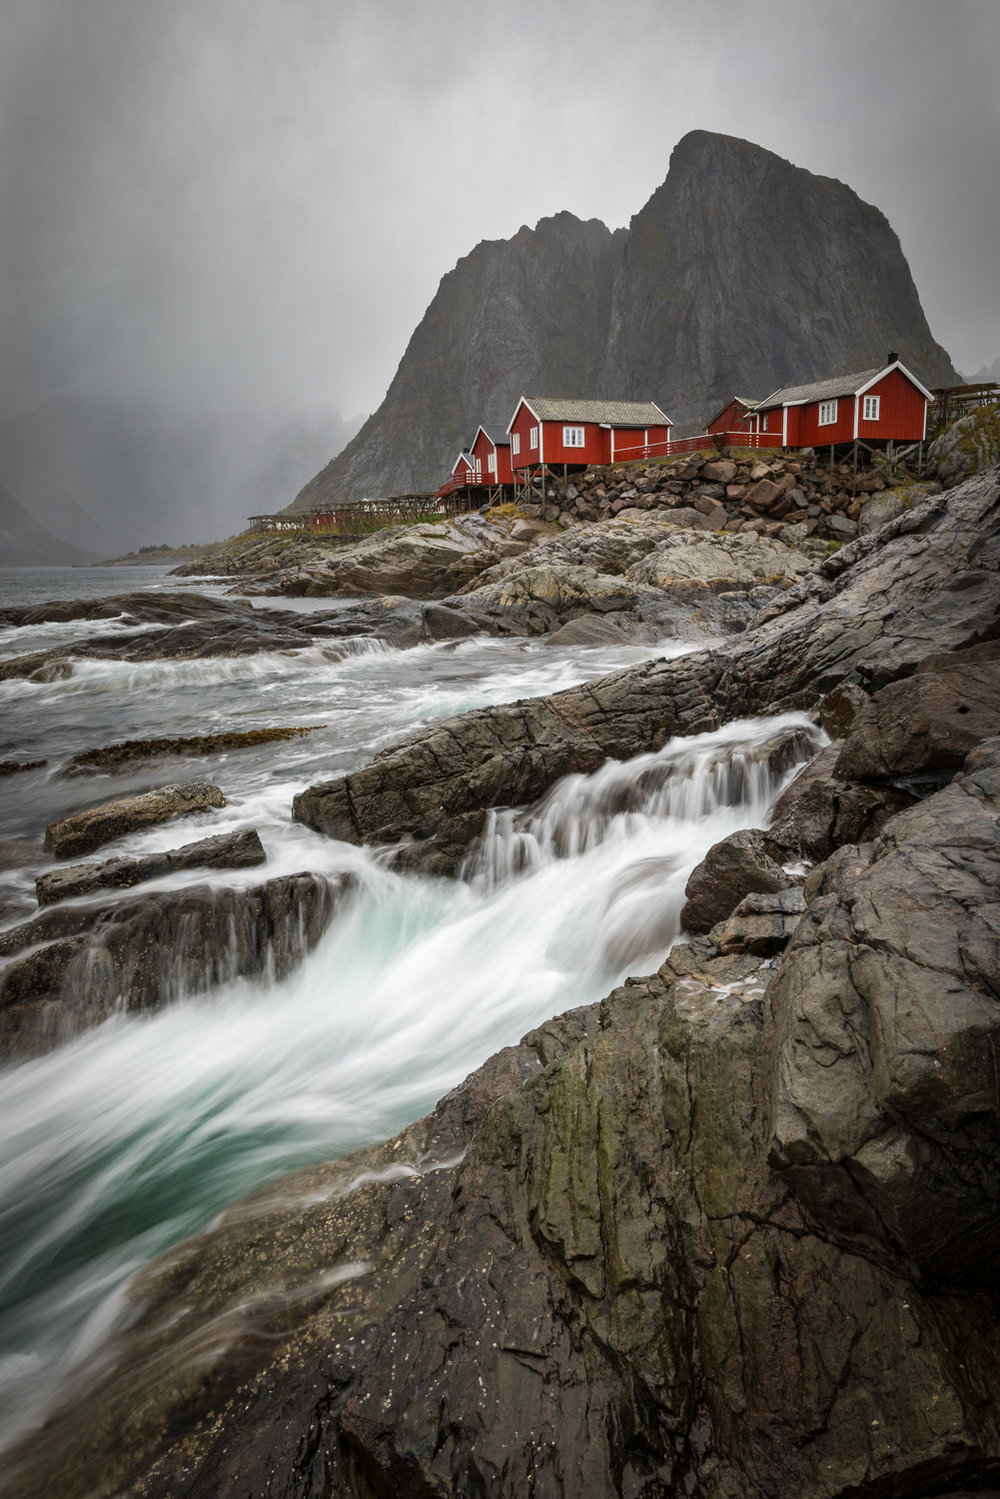 This image is taken on one of the worst days I've seen on the Lofoten this far. It took me over an hour and 6 images to get one I was happy about. Raindrops and the right timing, made this really hard. I had packed my camera a couple of times as the rain worsened. I was soaking wet, even my waterproofs seemed to be at a point of giving up. Rain was literally dripping from my camera, but I am stoked about the final result! Tamron SP 15-30 | 19 mm | f/18 | 1/3 sec | ISO 100.